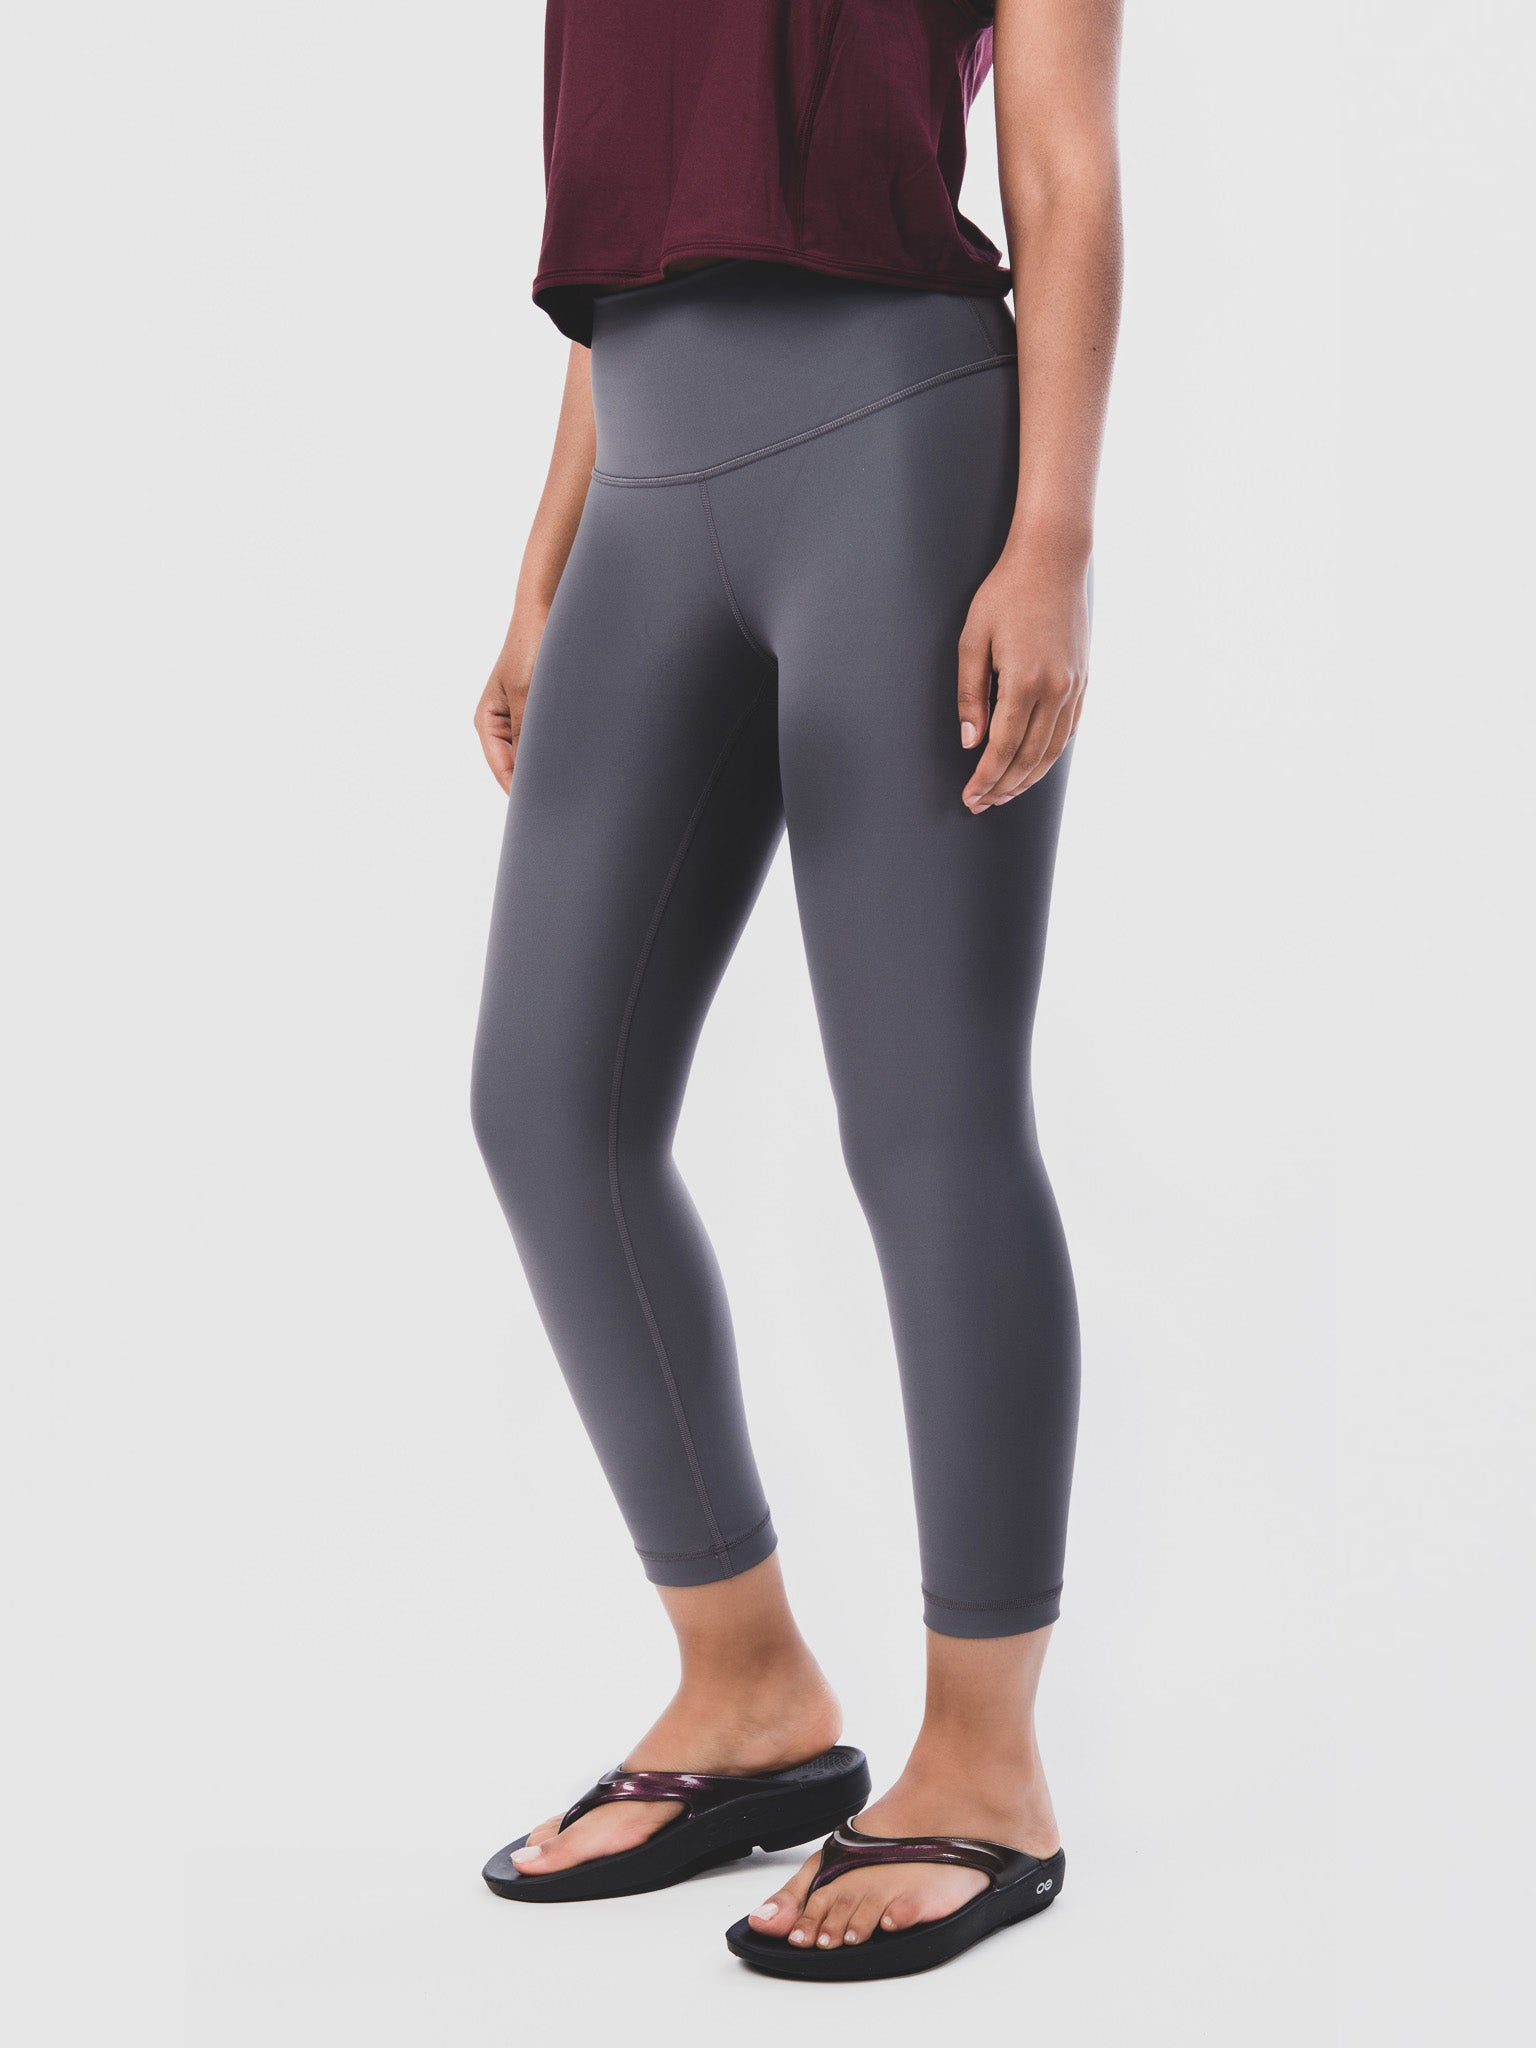 Women's OOlala Cabernet Knee Down